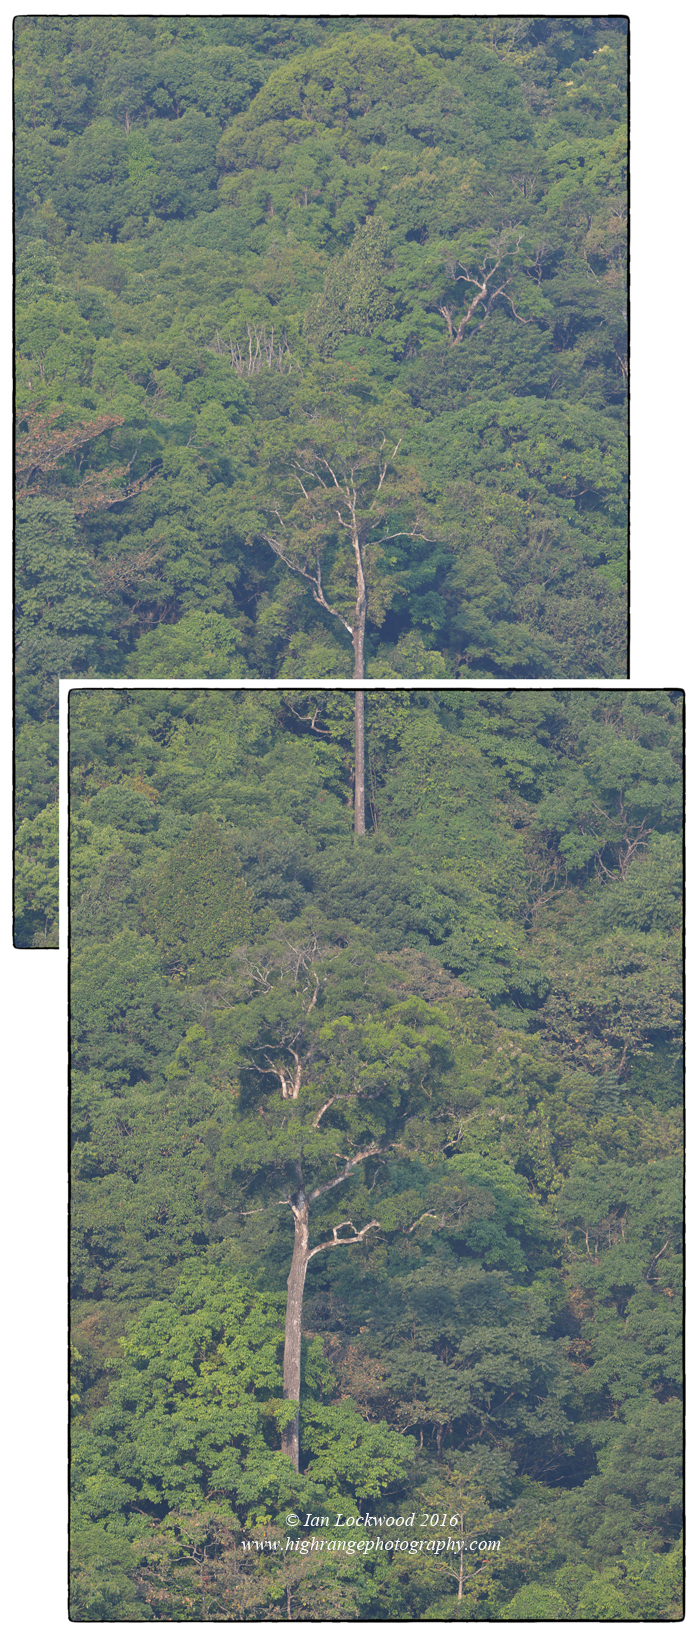 Canopy of the rainforest in Silent Valley National park -a composite exploration.